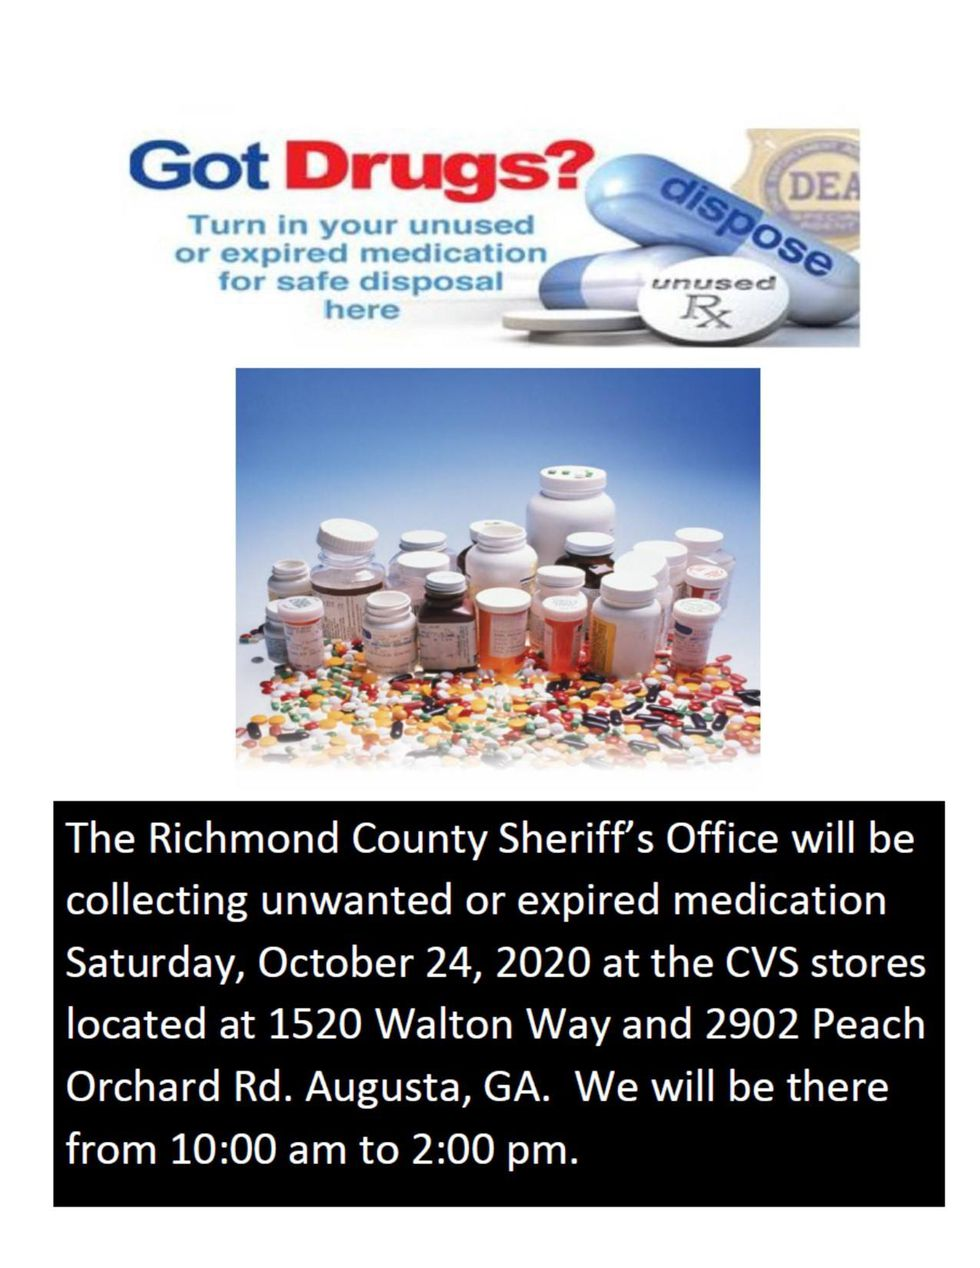 The Richmond County Sheriff's Office is hosting an event where the community can dispose of...